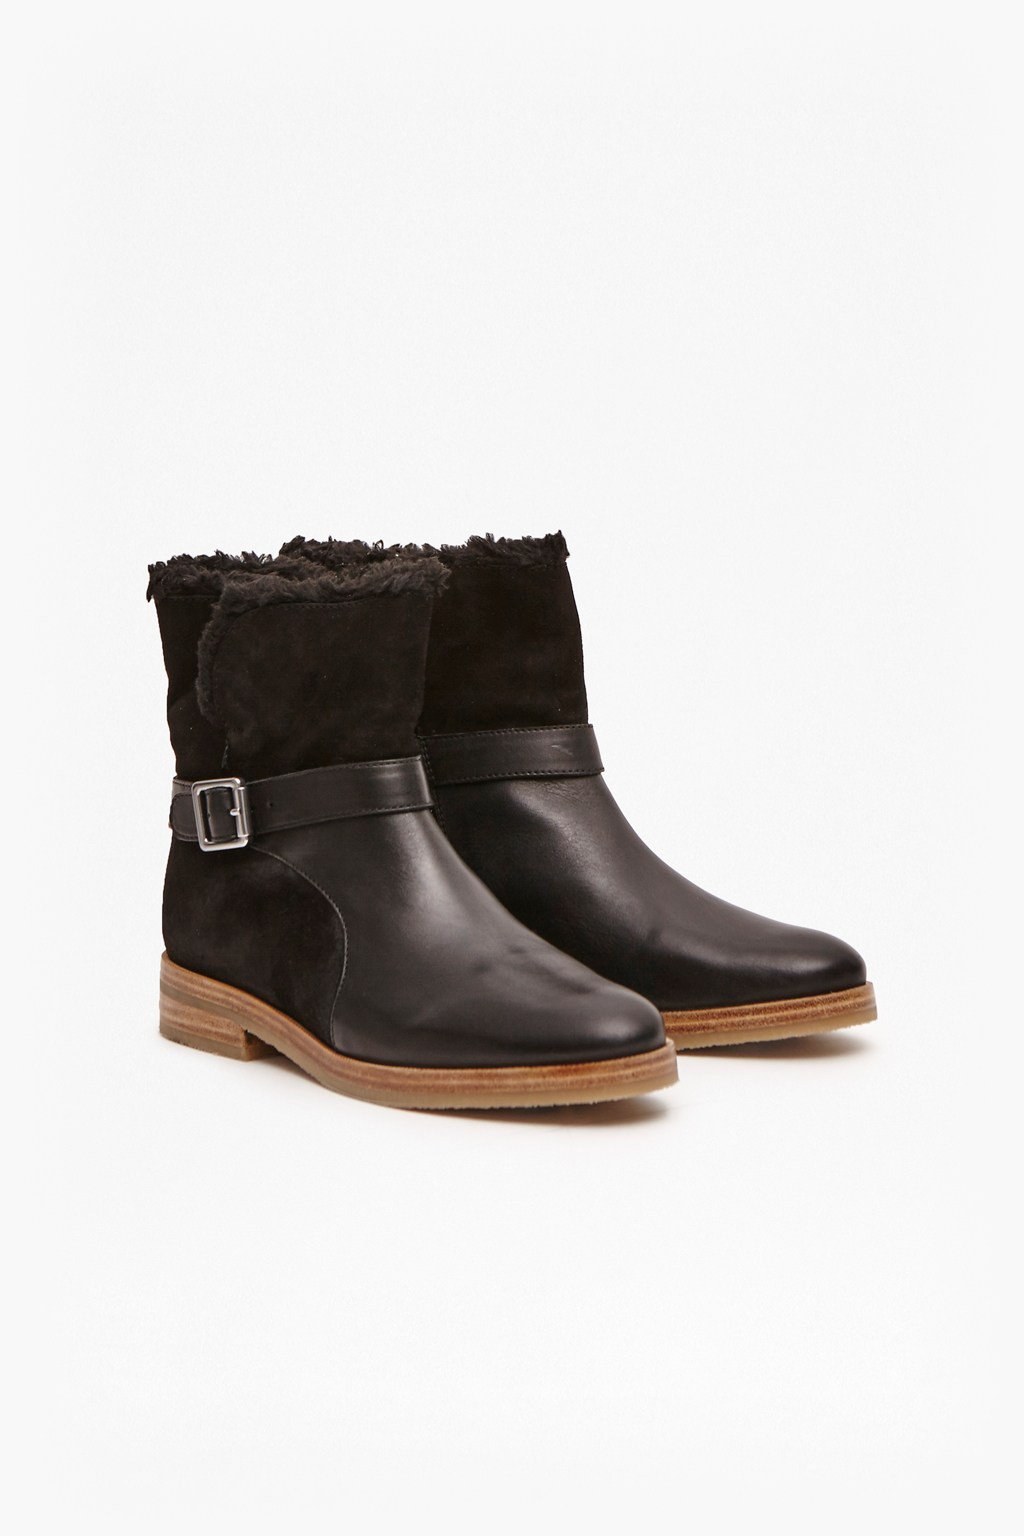 great plains tracker faux fur leather boots £50, were £125